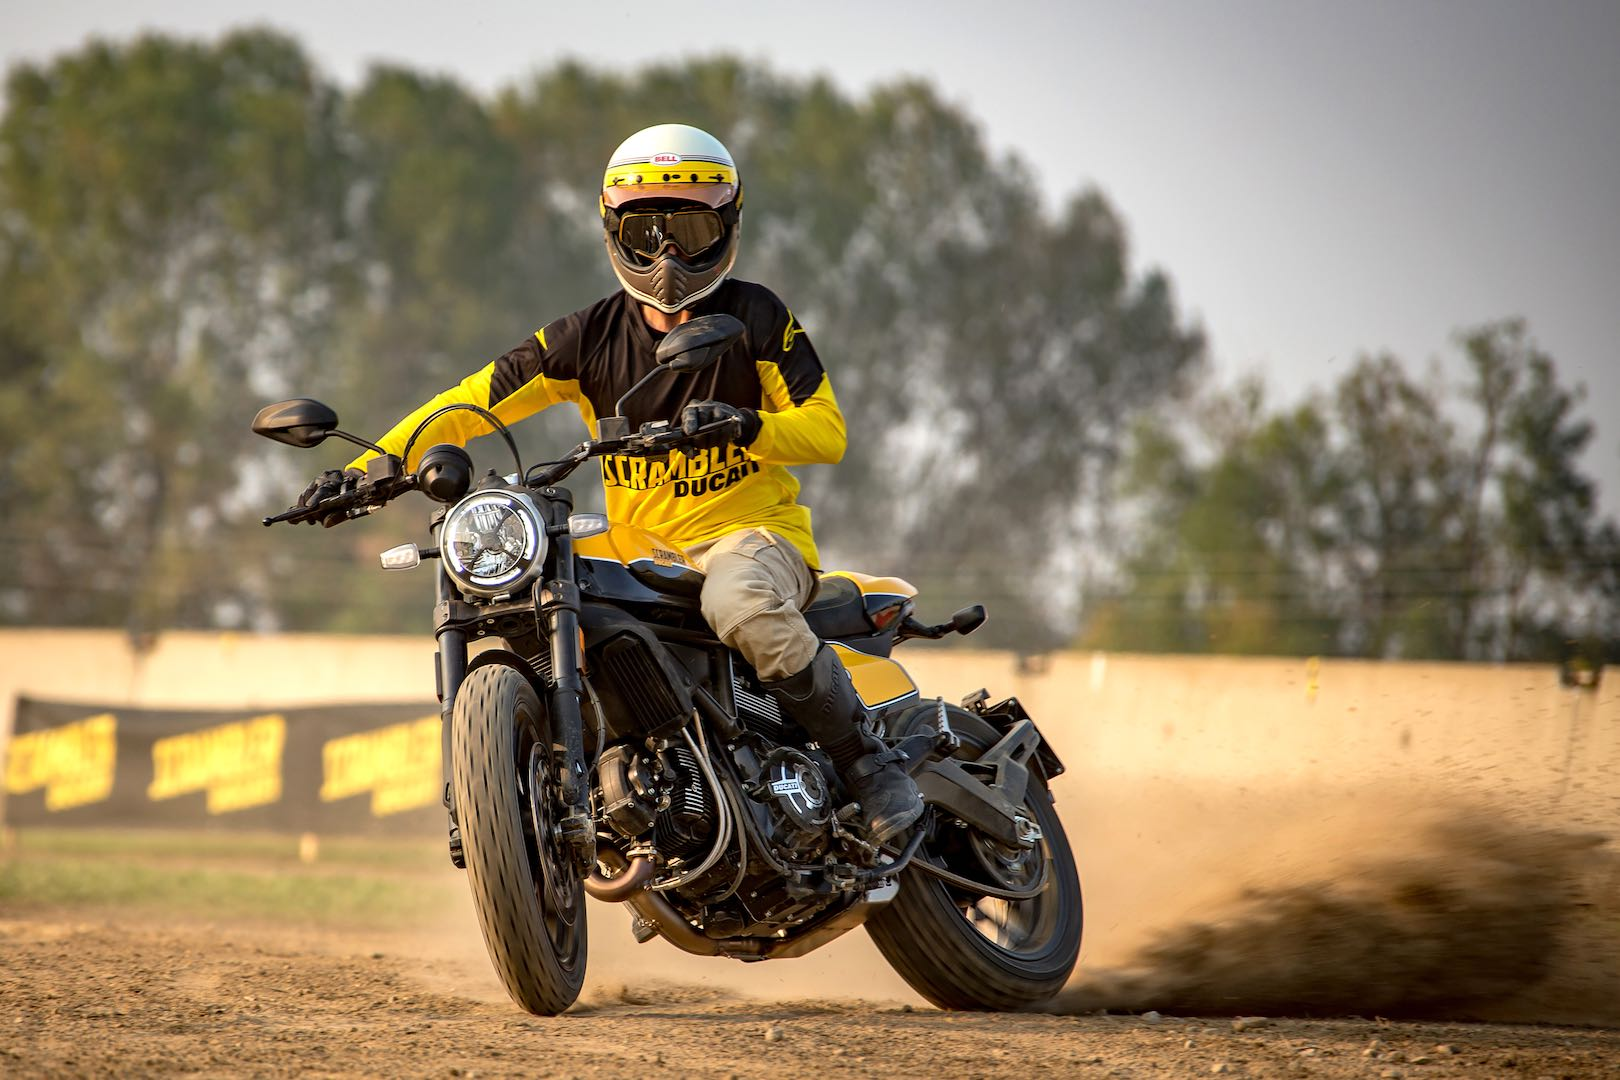 2019 Ducati Scrambler Full Throttle Price